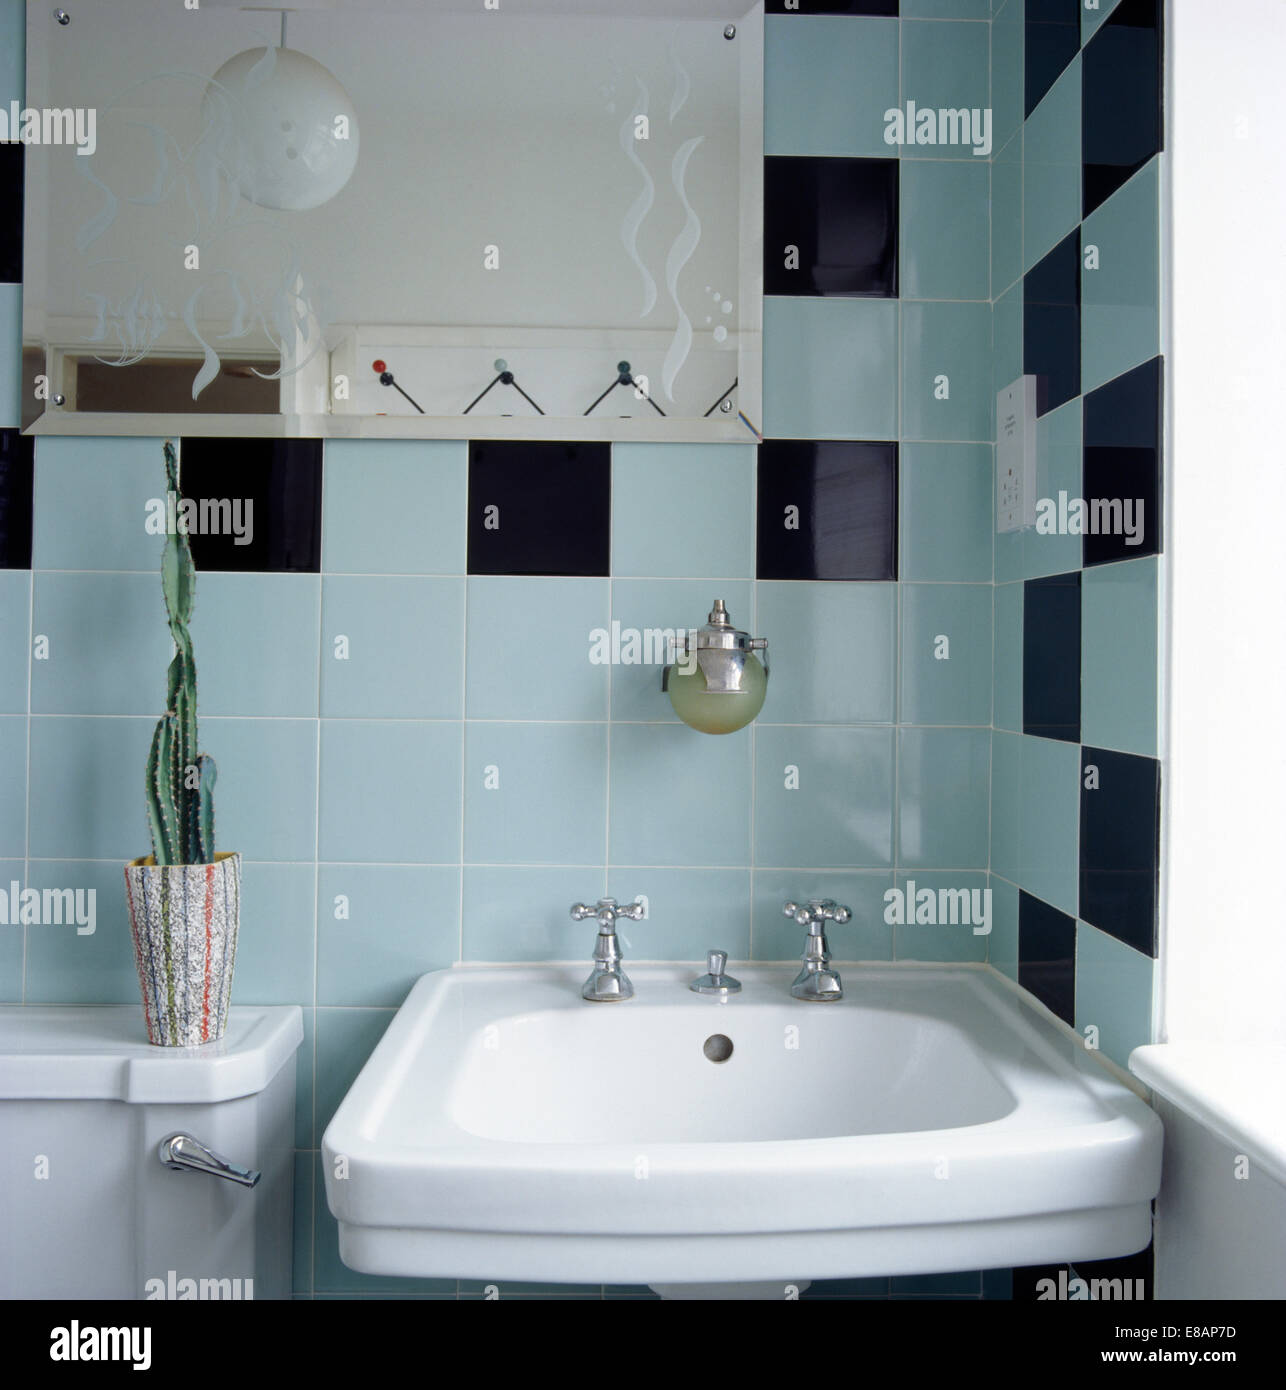 Pale turquoise and black tiles on wall above basin in fifties style ...